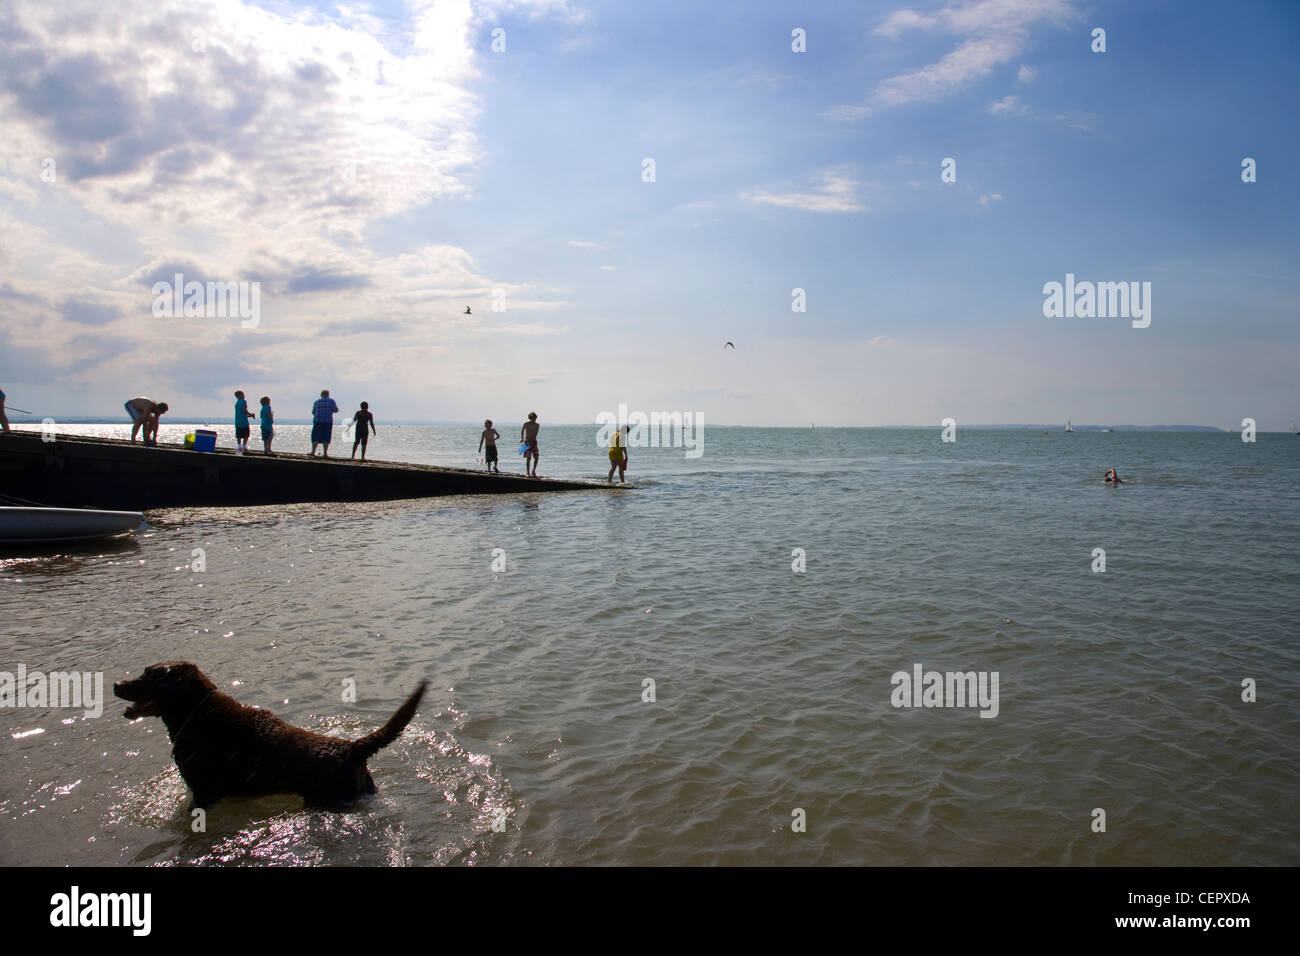 People and their pets enjoying the sea in the late afternoon at Whitstable. Stock Photo